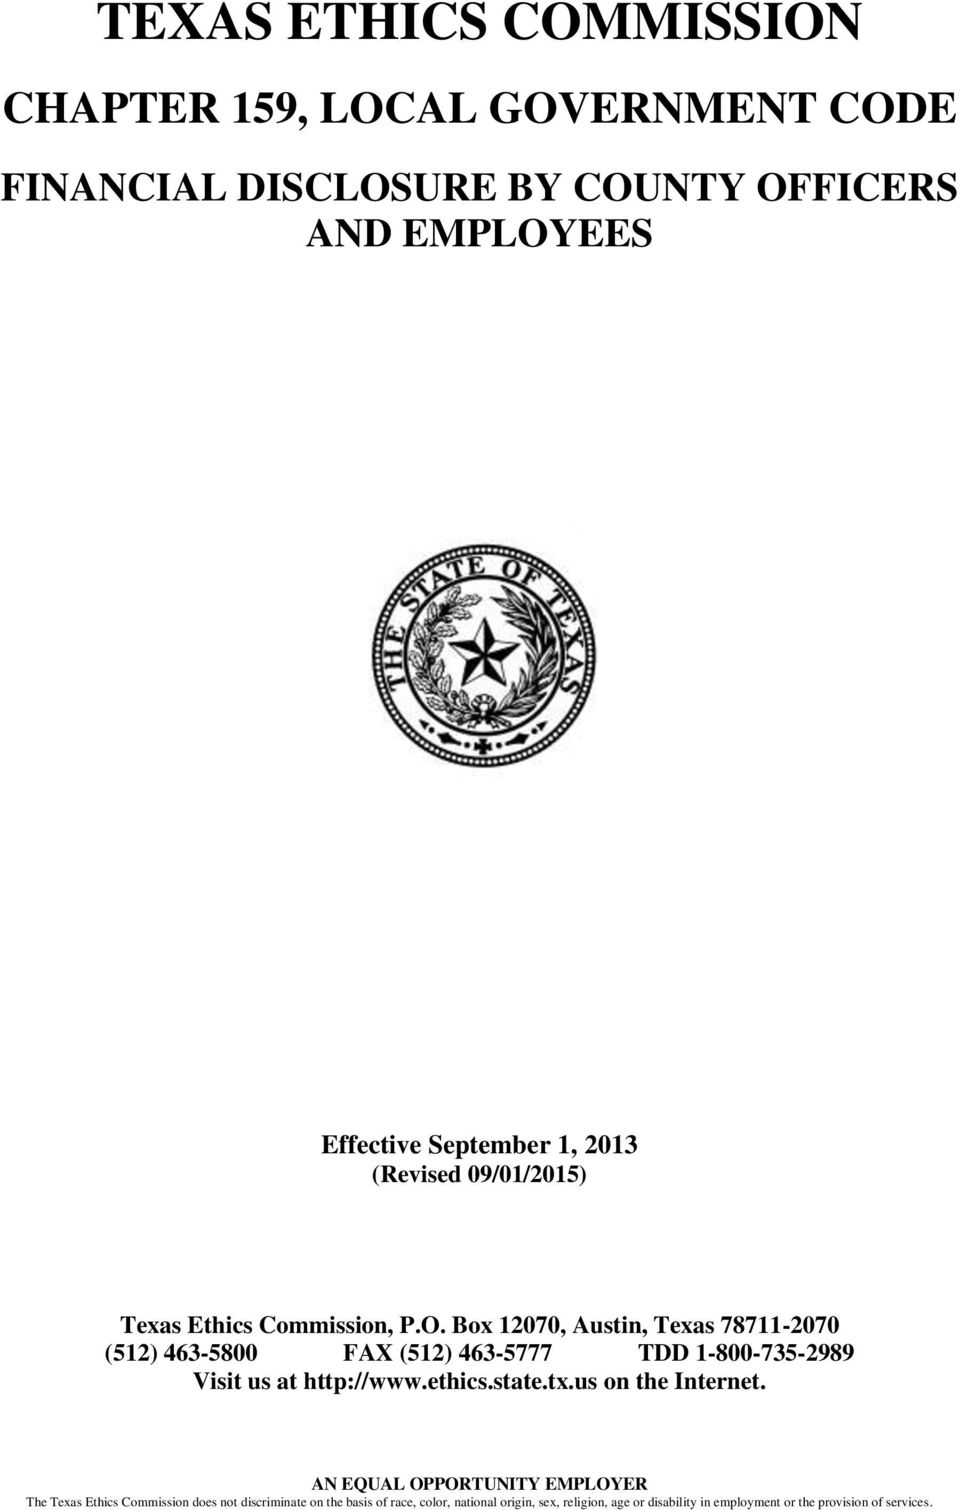 Box 12070, Austin, Texas 78711-2070 (512) 463-5800 FAX (512) 463-5777 TDD 1-800-735-2989 Visit us at http://www.ethics.state.tx.